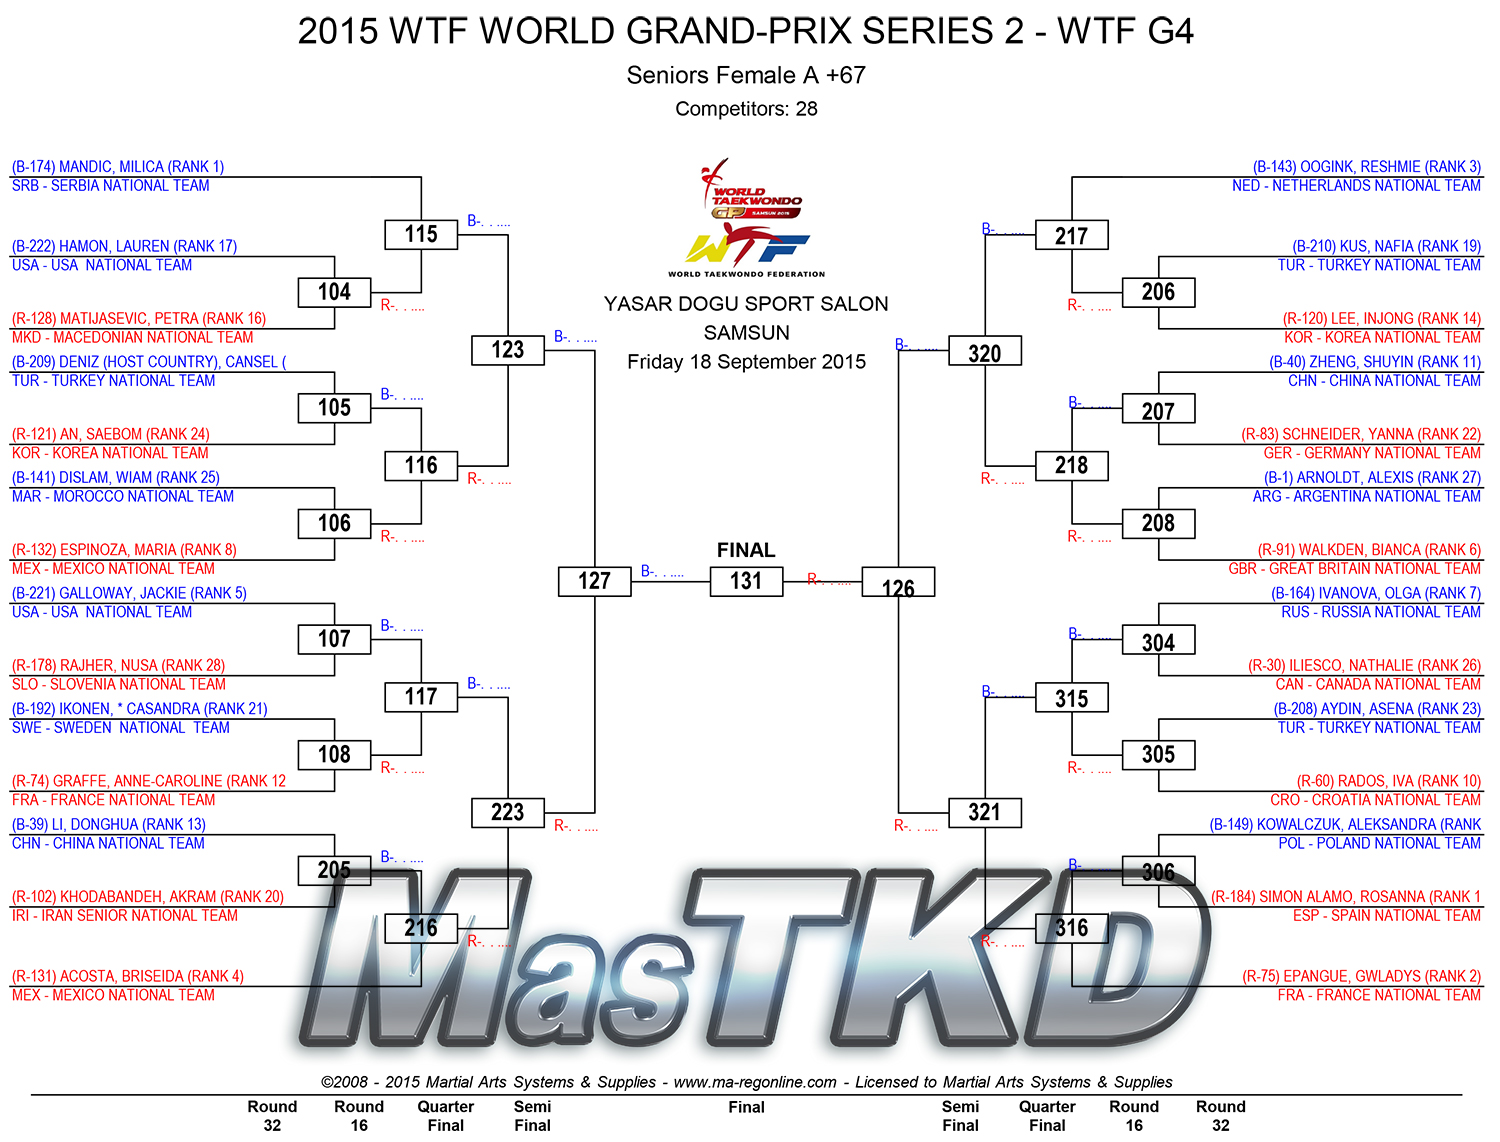 2015-WTF-WORLD-GRAND-PRIX-SERIES-2_D1_Fo67